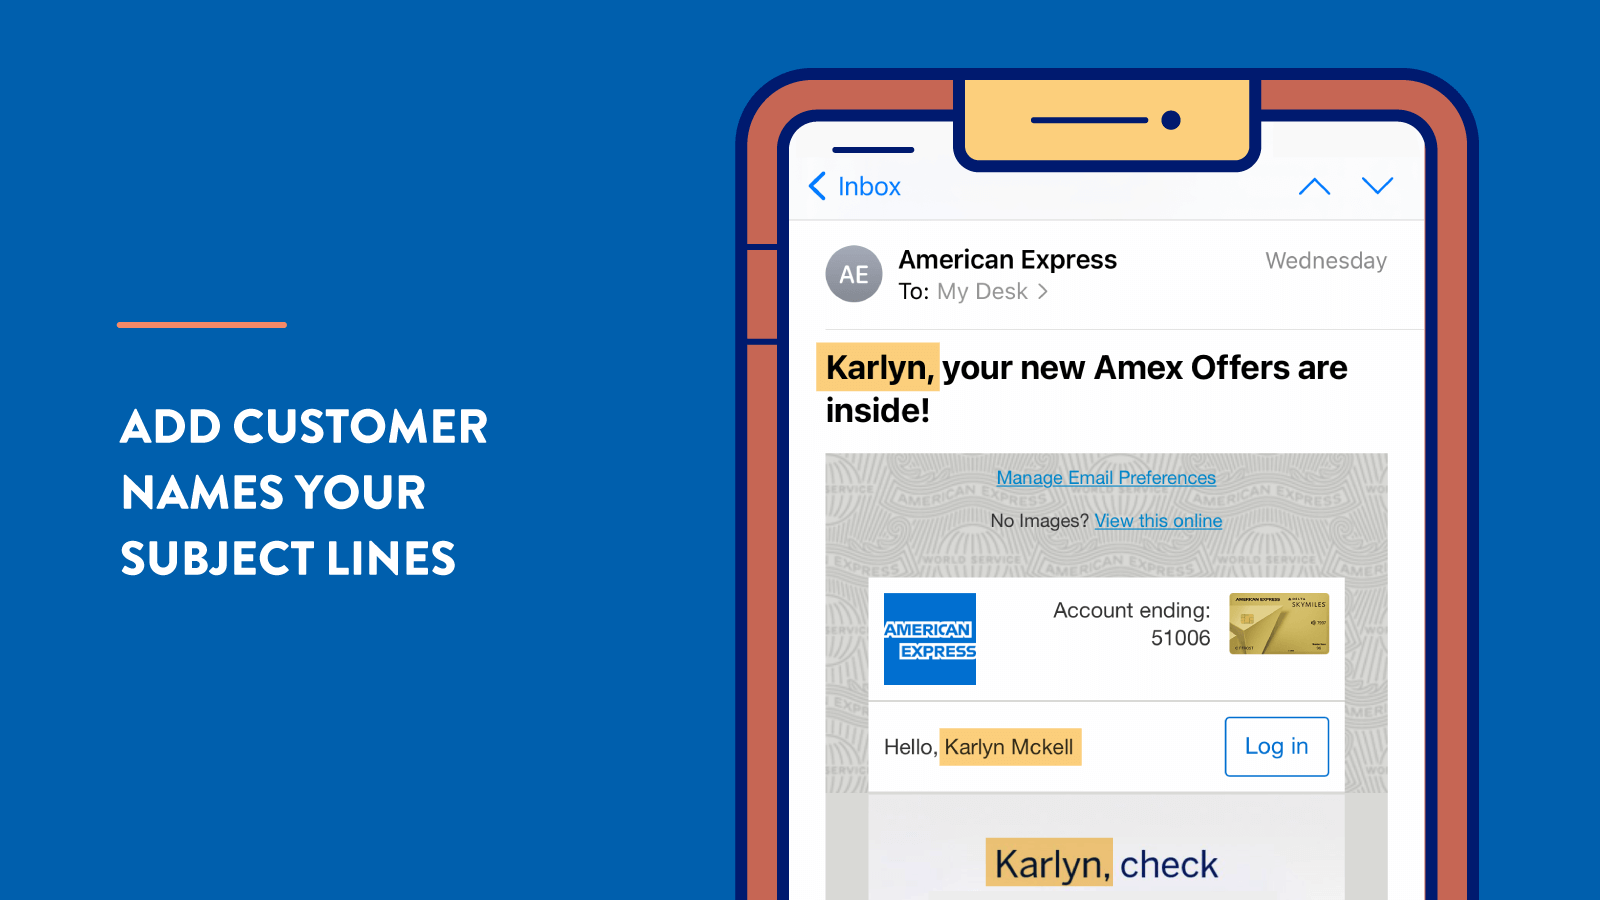 Personalization tip: Add Customer Names to Subject Lines